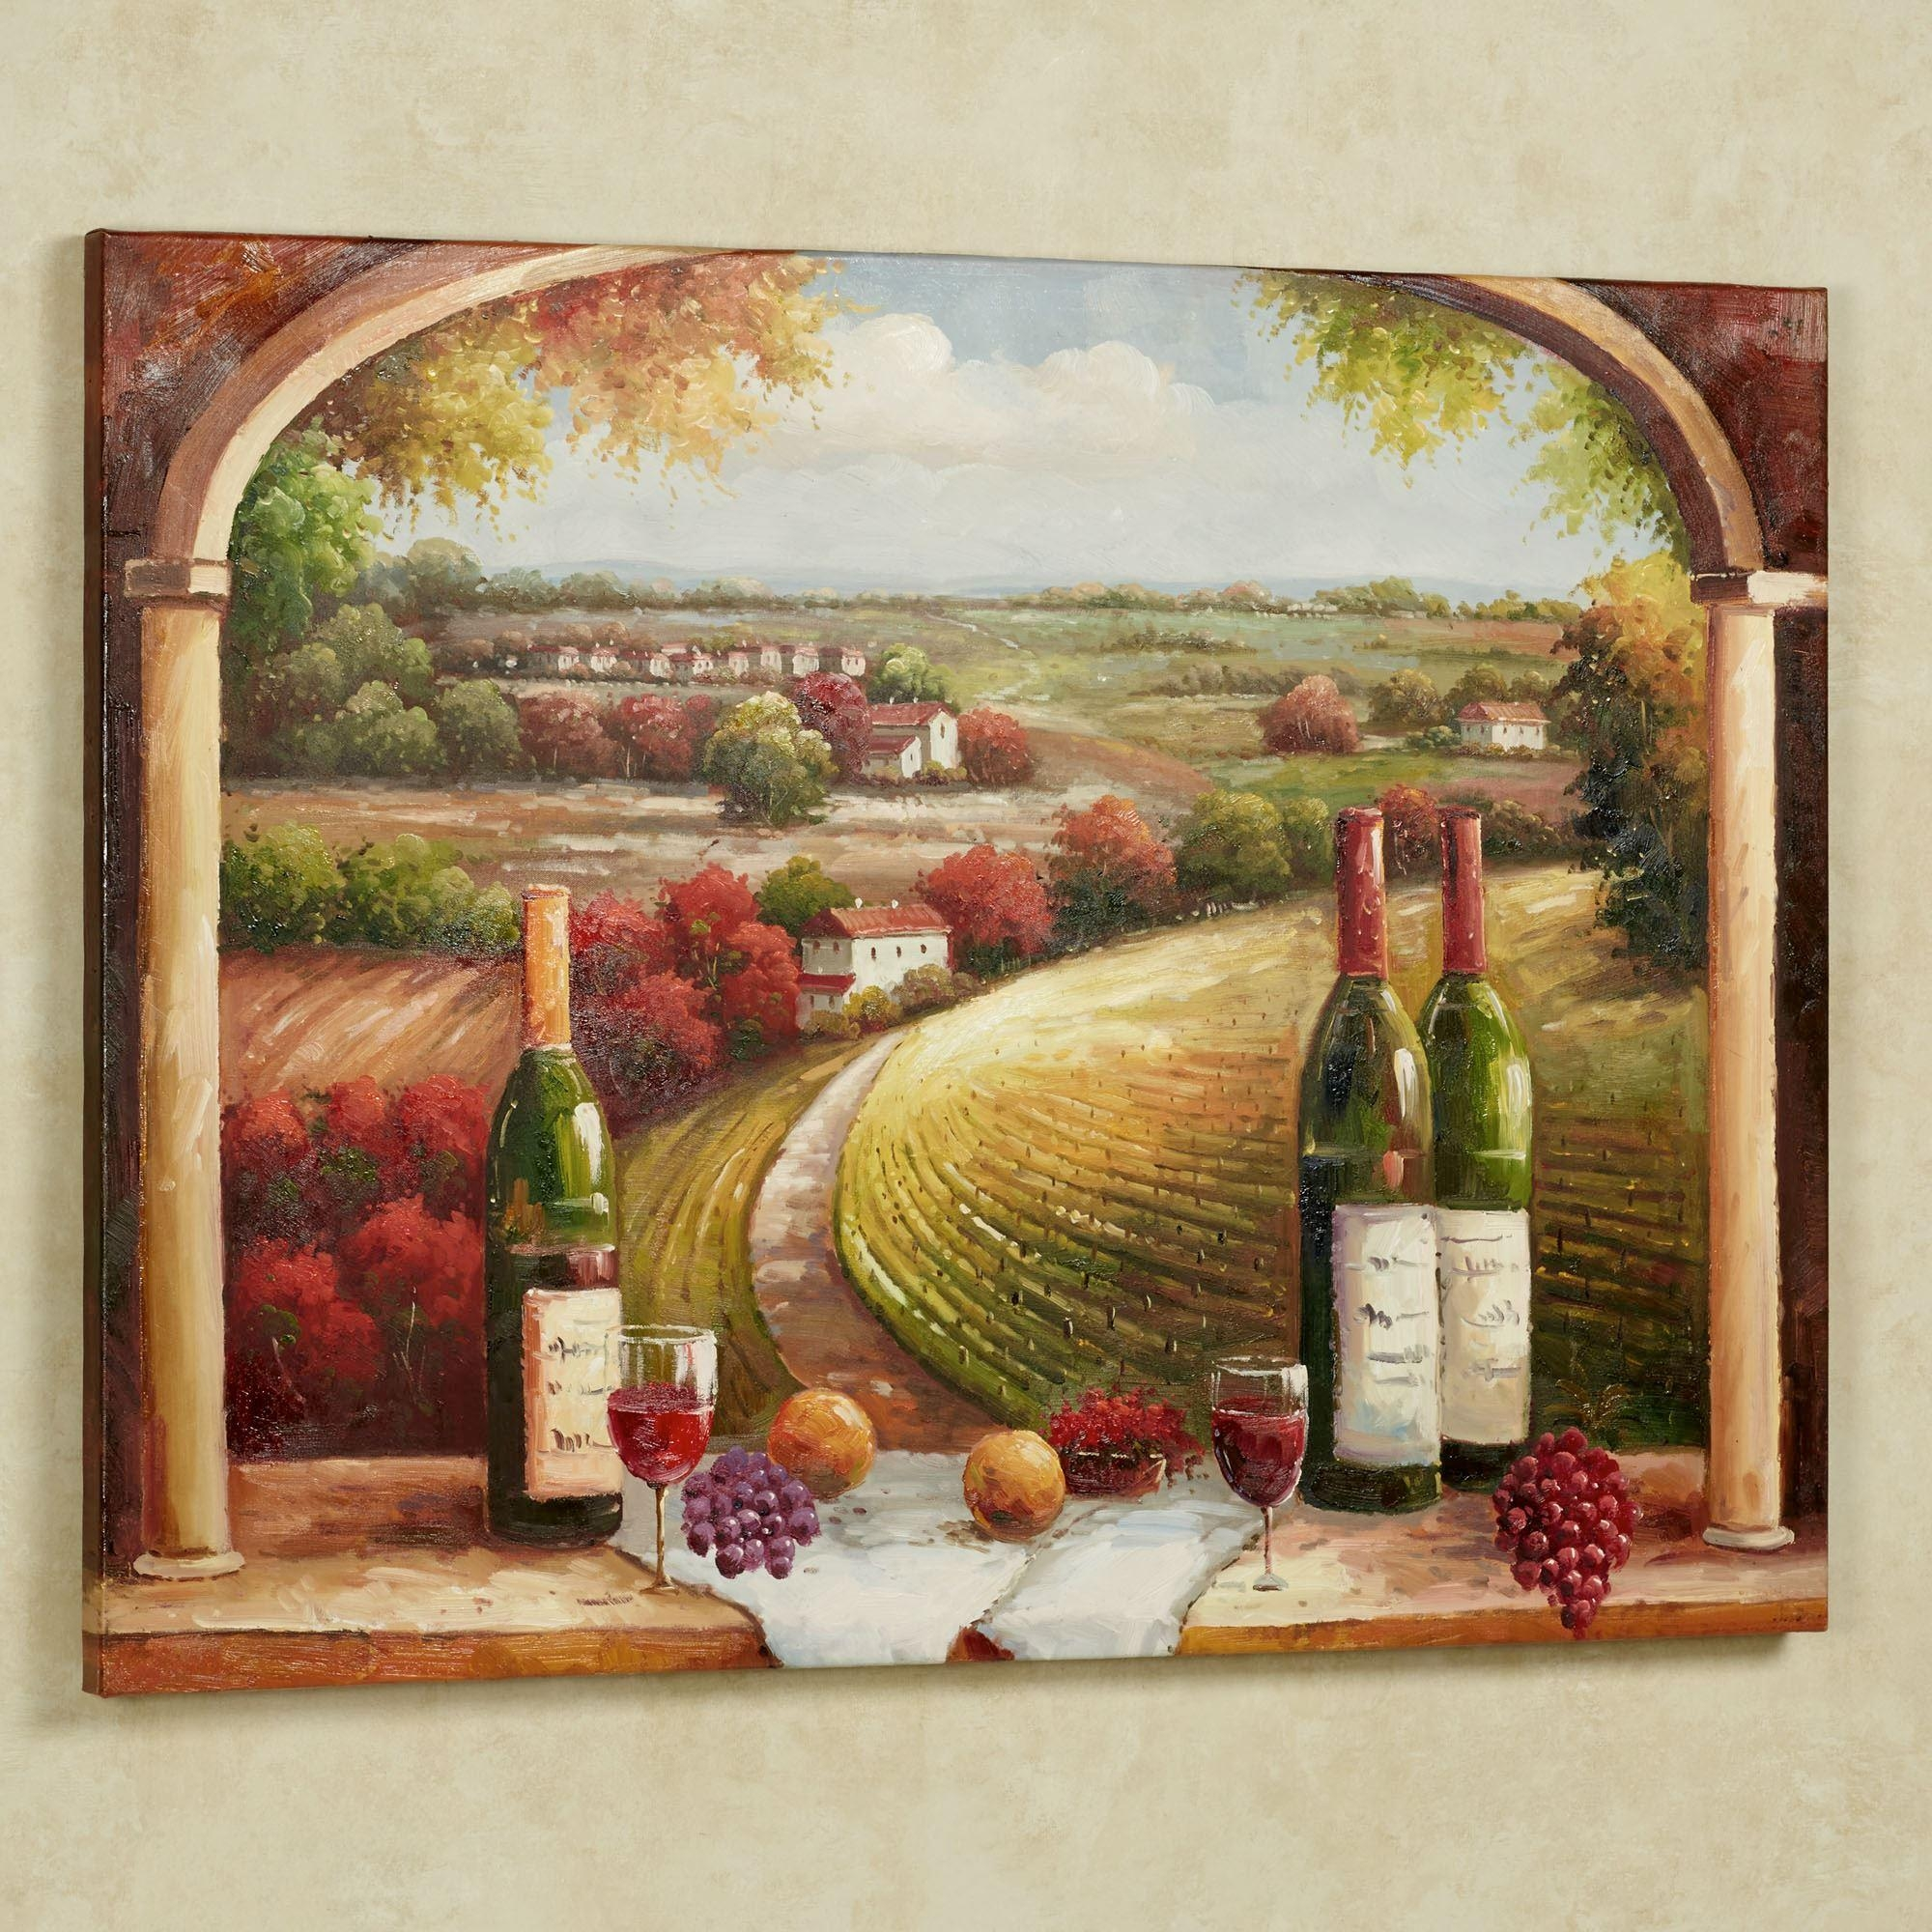 Tuscan And Italian Home Decor | Touch Of Class For Tuscan Wall Art Decor (View 2 of 20)